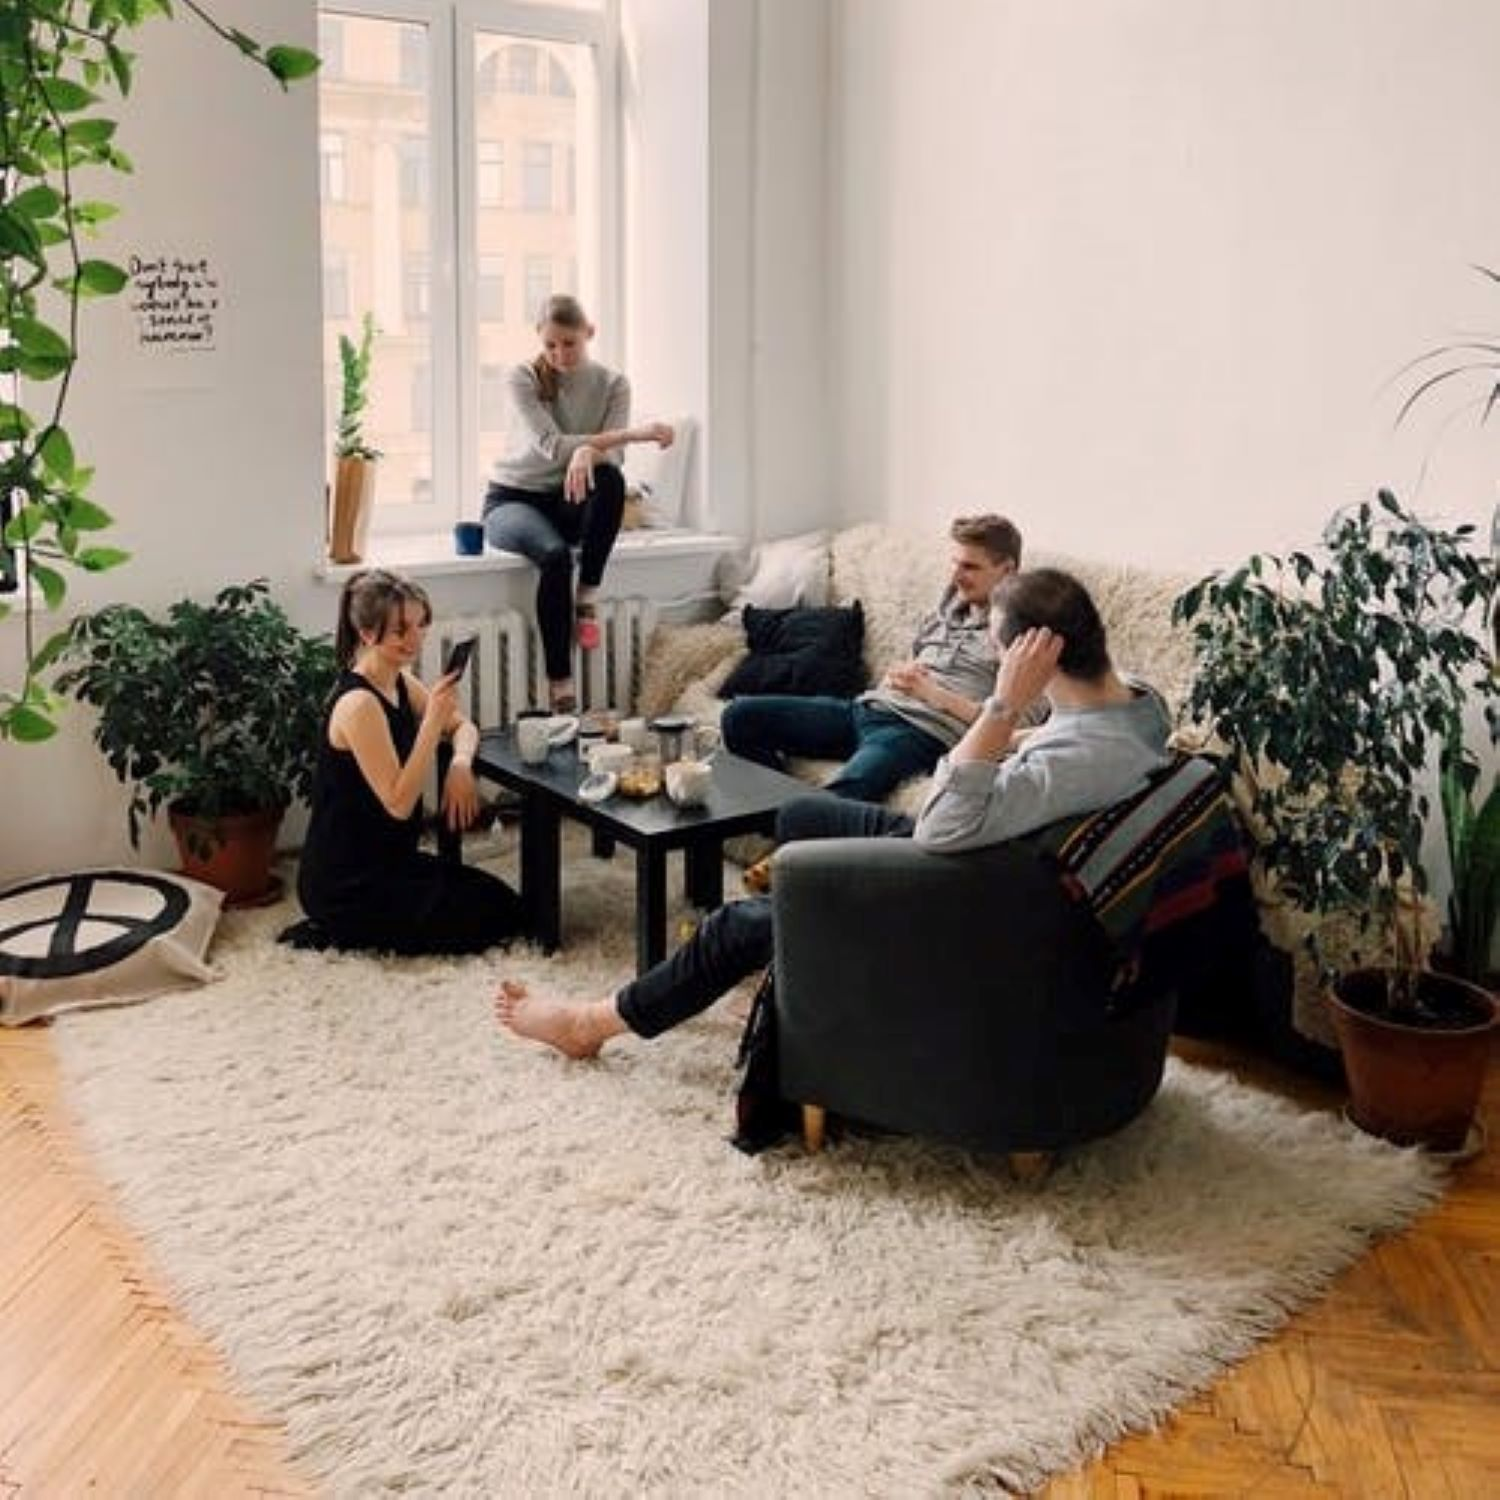 9 Best Ideas to Furnish a Small Living Room